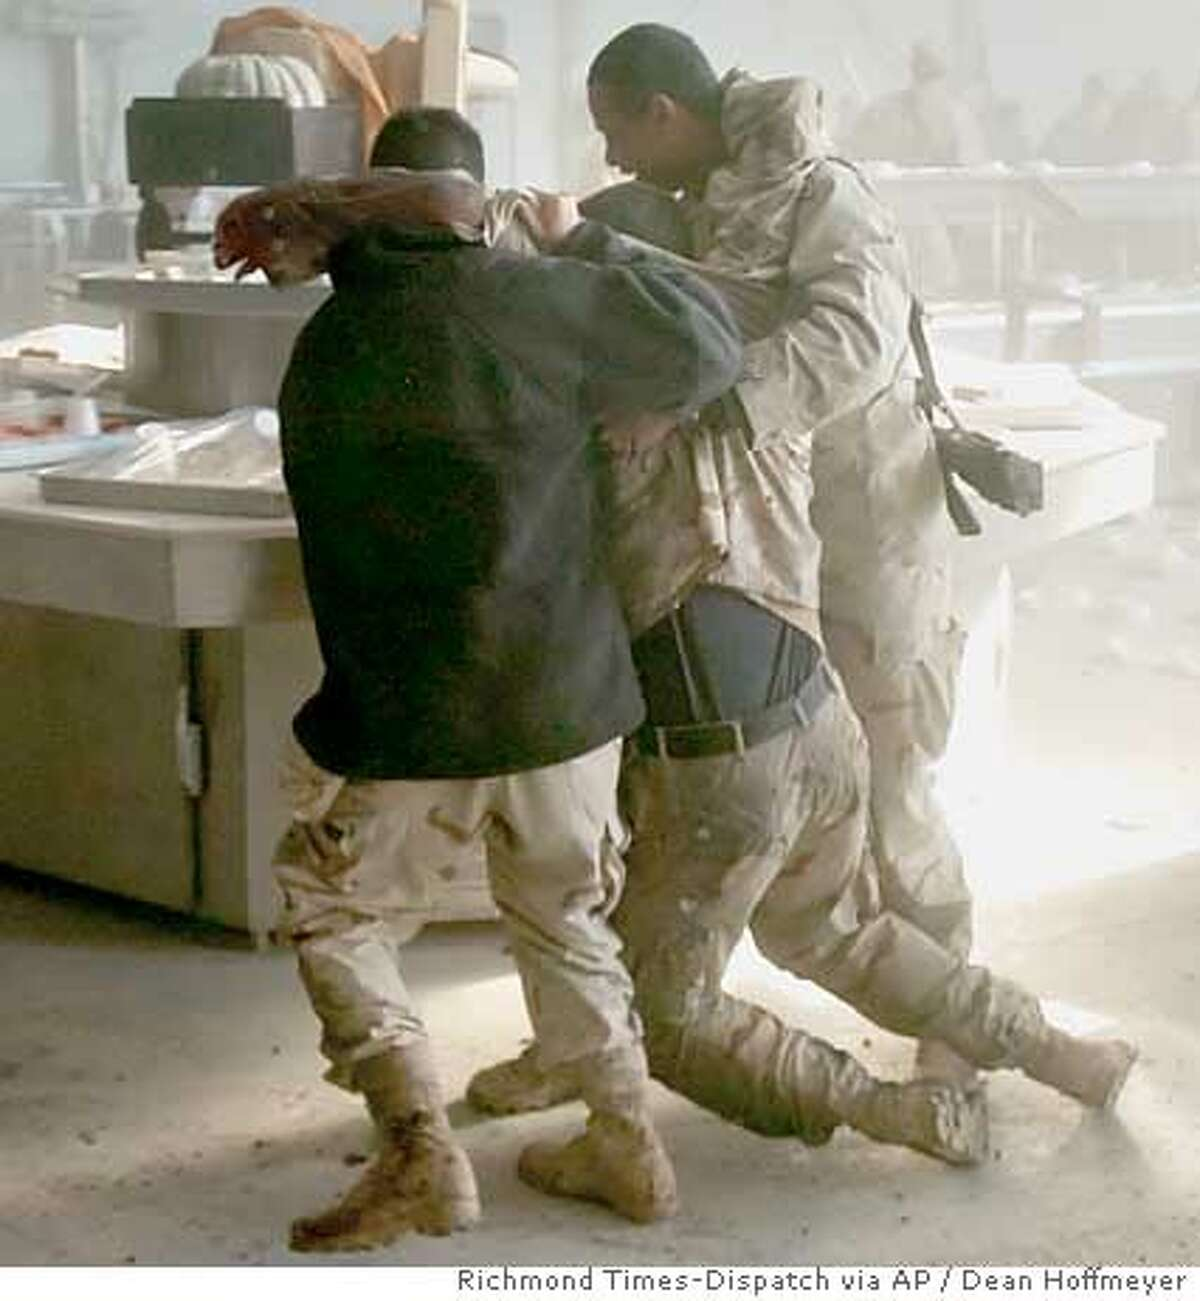 U.S. soldiers tend to the wounded after an apparent insurgent mortar attack on a dining facility during lunchtime on FOB Marez in Mosul, Iraq on Tuesday, Dec. 21, 2004. (Richmond Times-Dispatch / Dean Hoffmeyer)